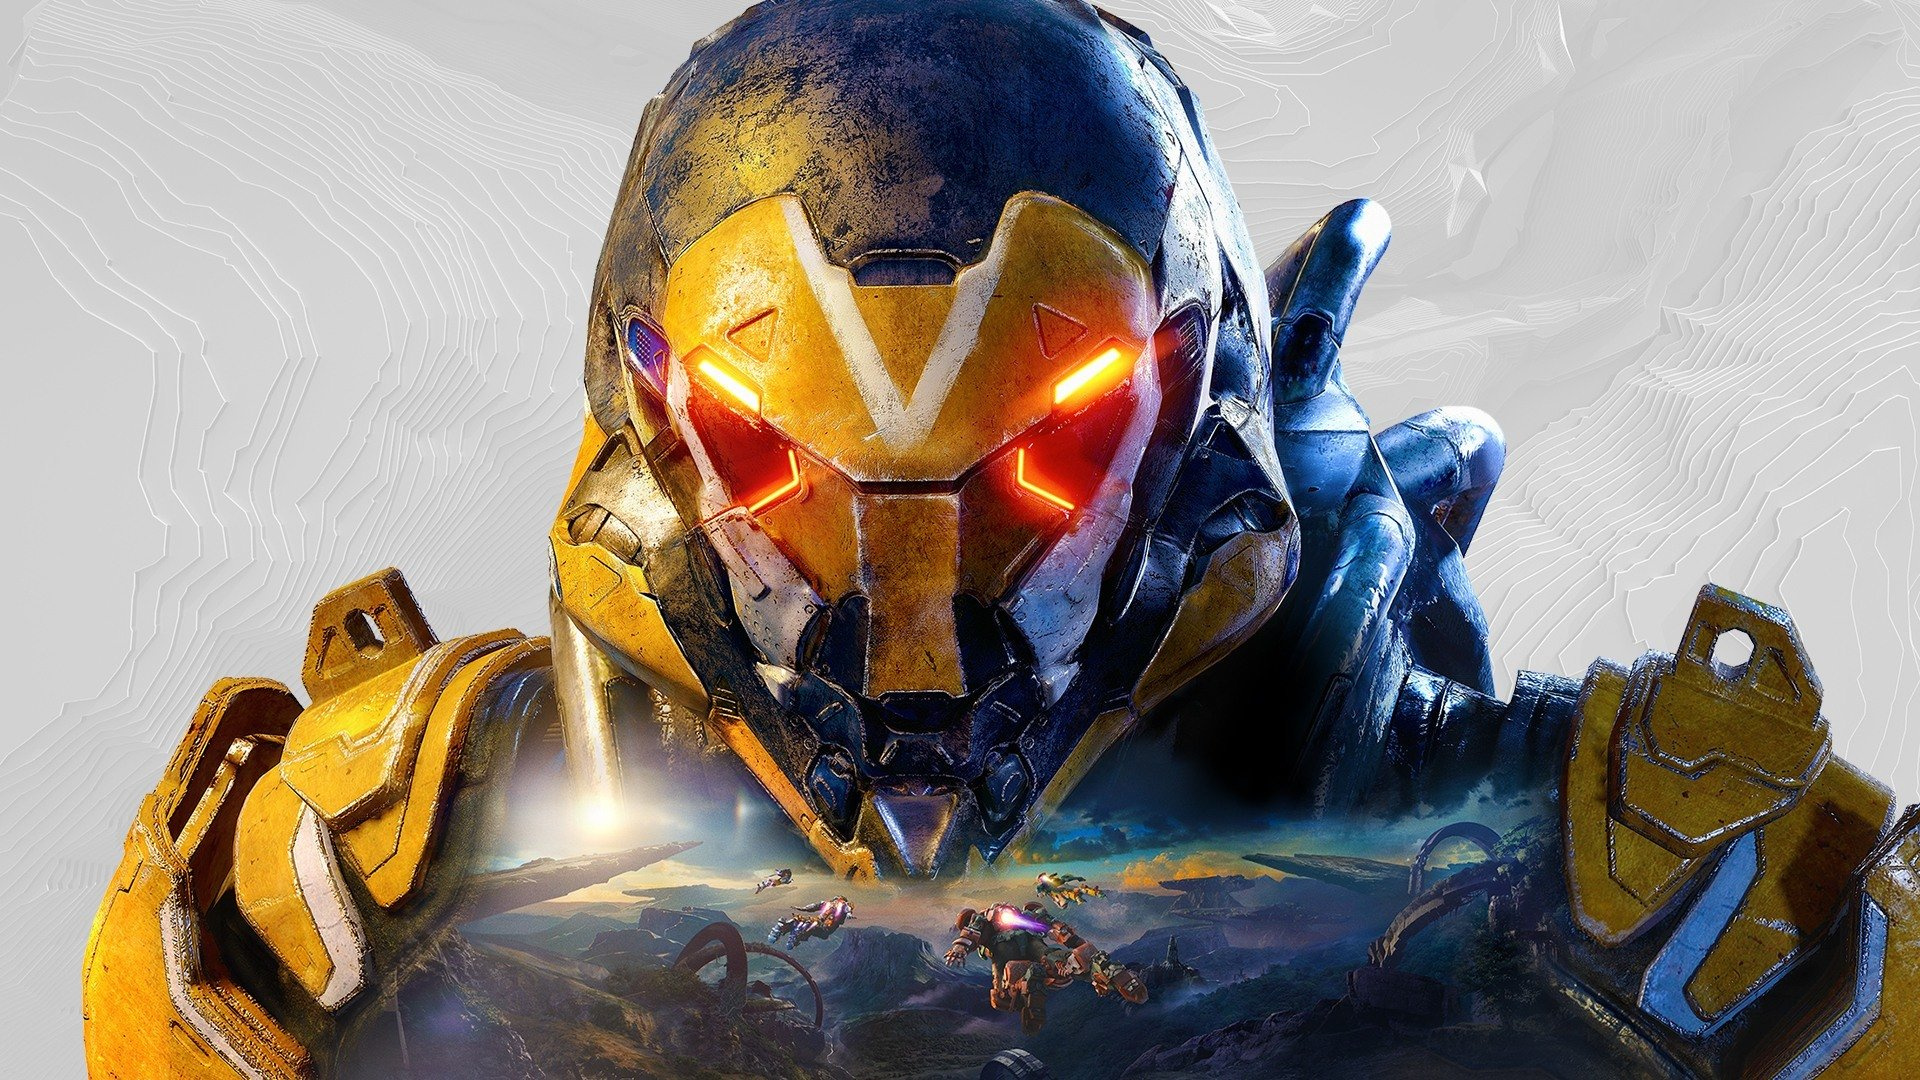 Anthem seasons are being dropped as BioWare pledges to 'reinvent' the game